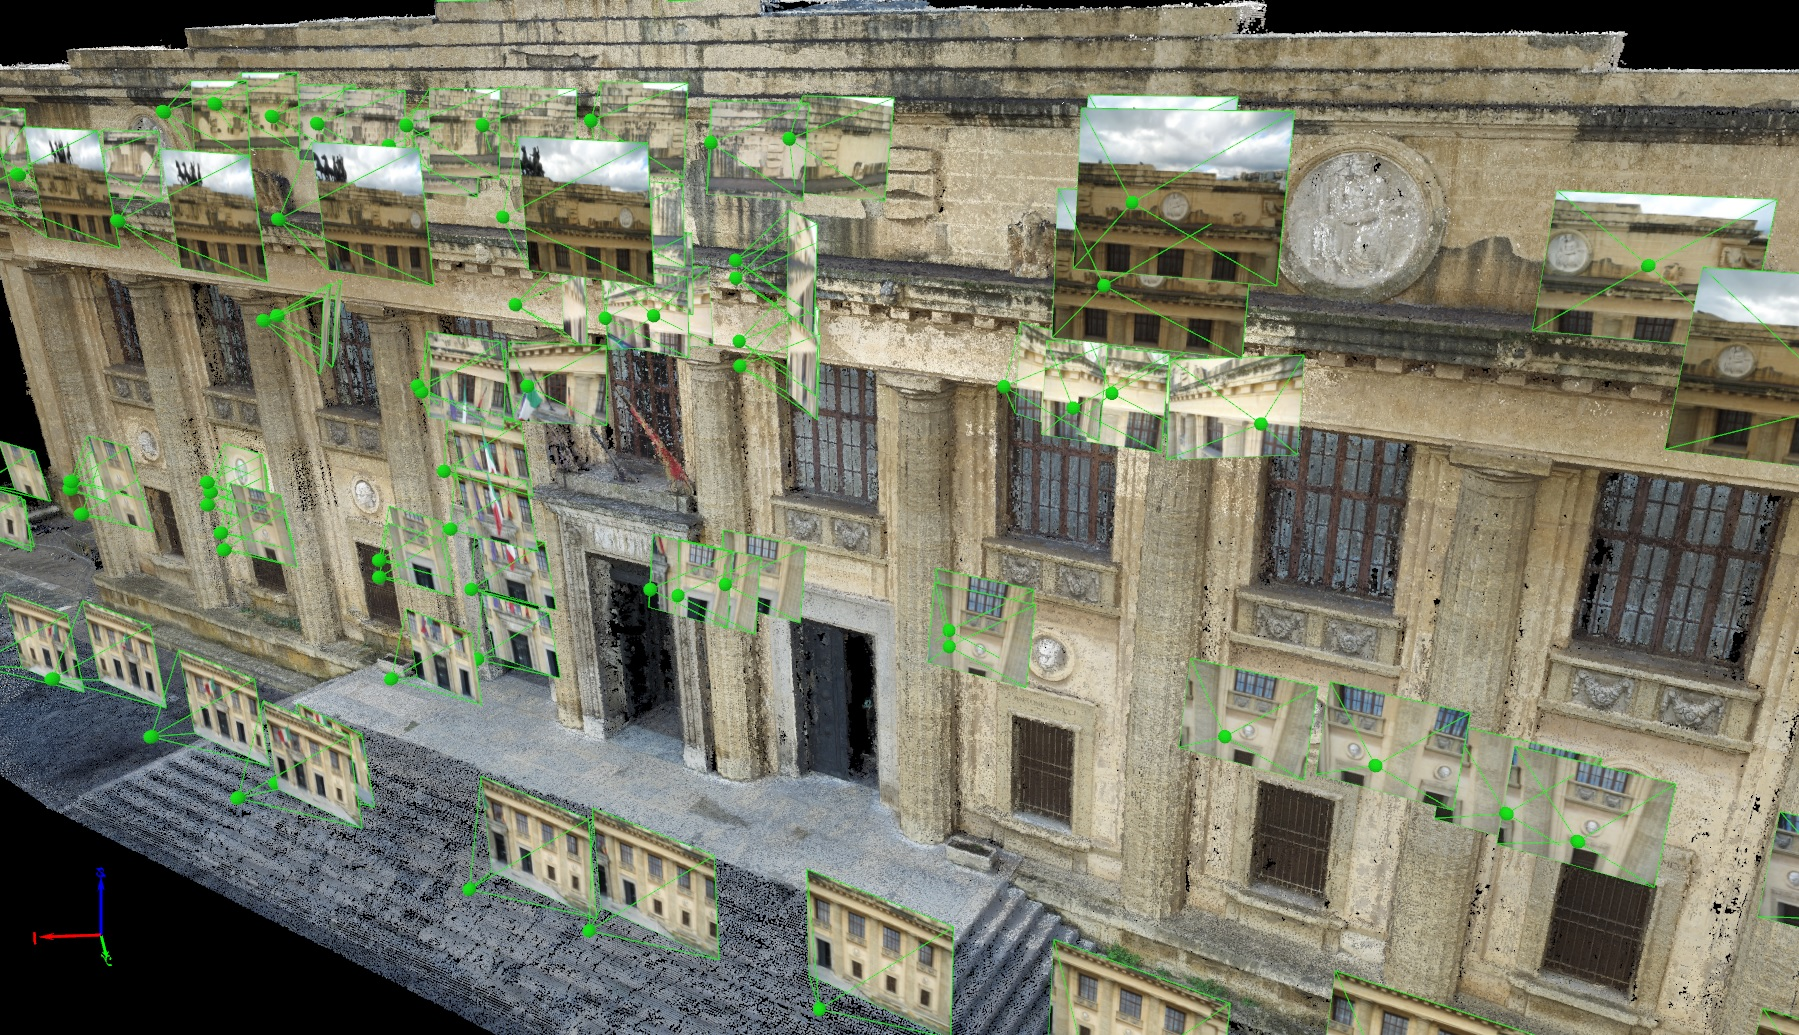 Pix4Dmapper orthoplane for an Italian facade inspection | Pix4D